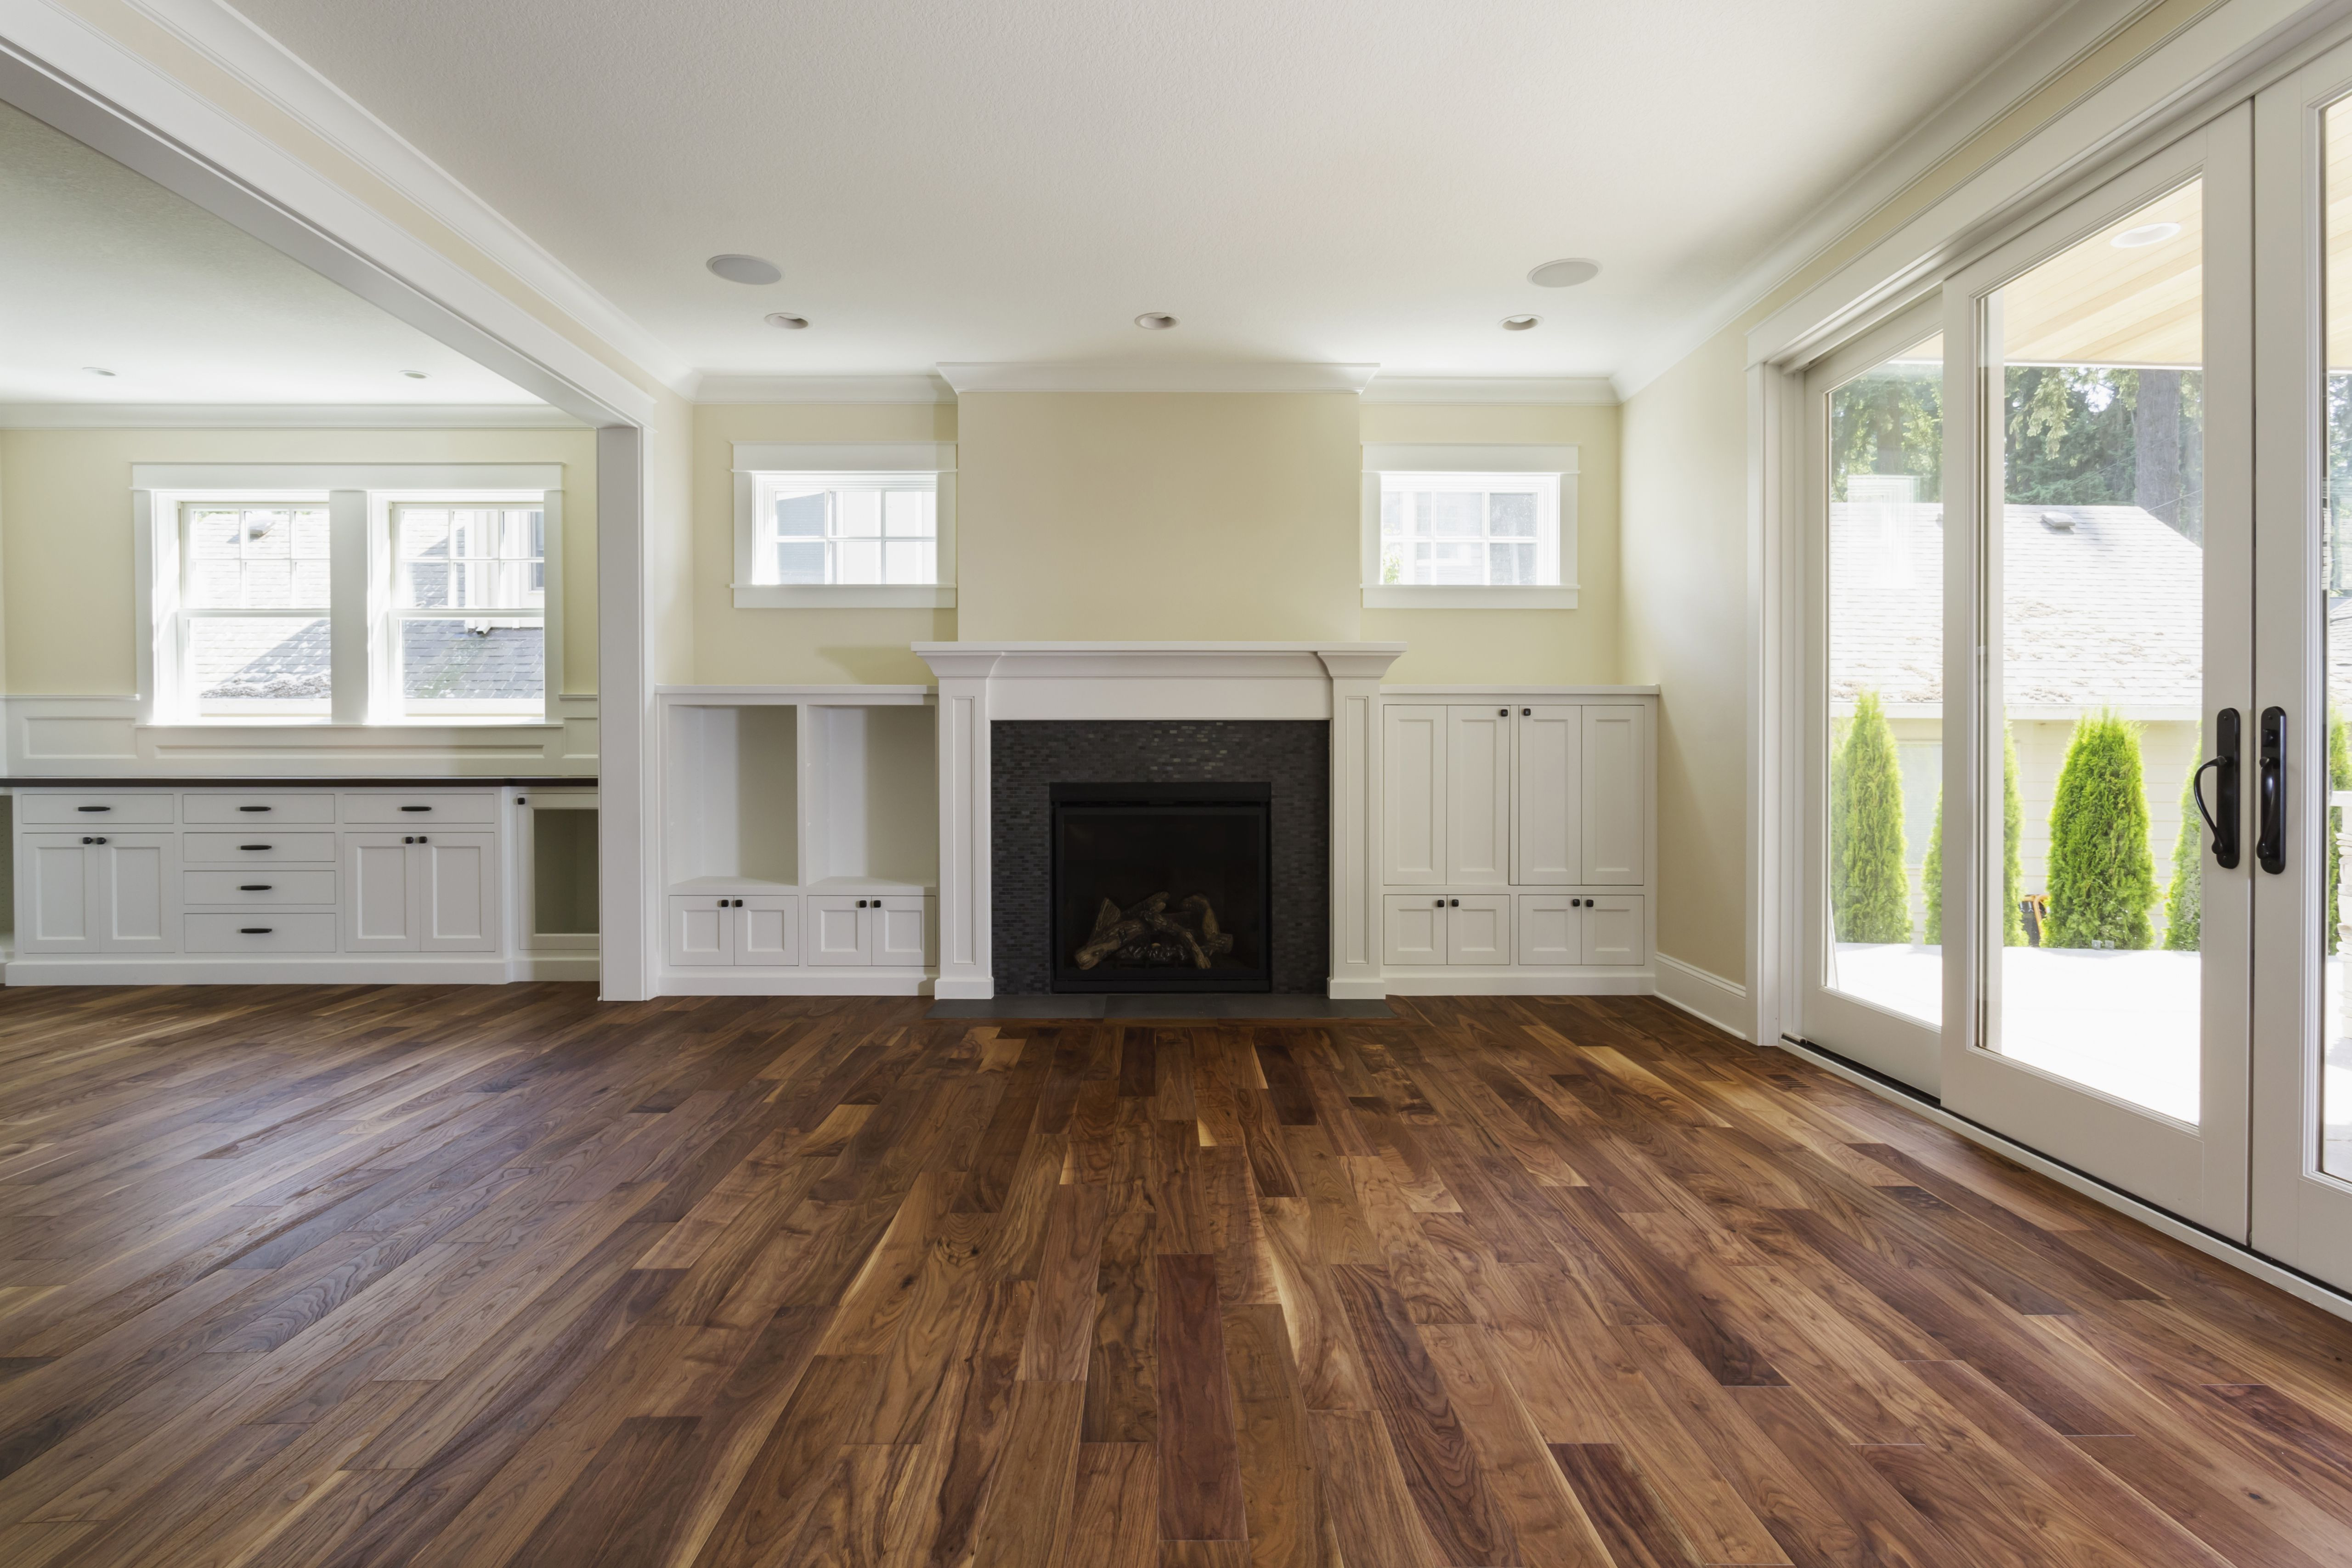 laminate flooring vs engineered hardwood of the pros and cons of prefinished hardwood flooring with fireplace and built in shelves in living room 57bef8e33df78cc16e